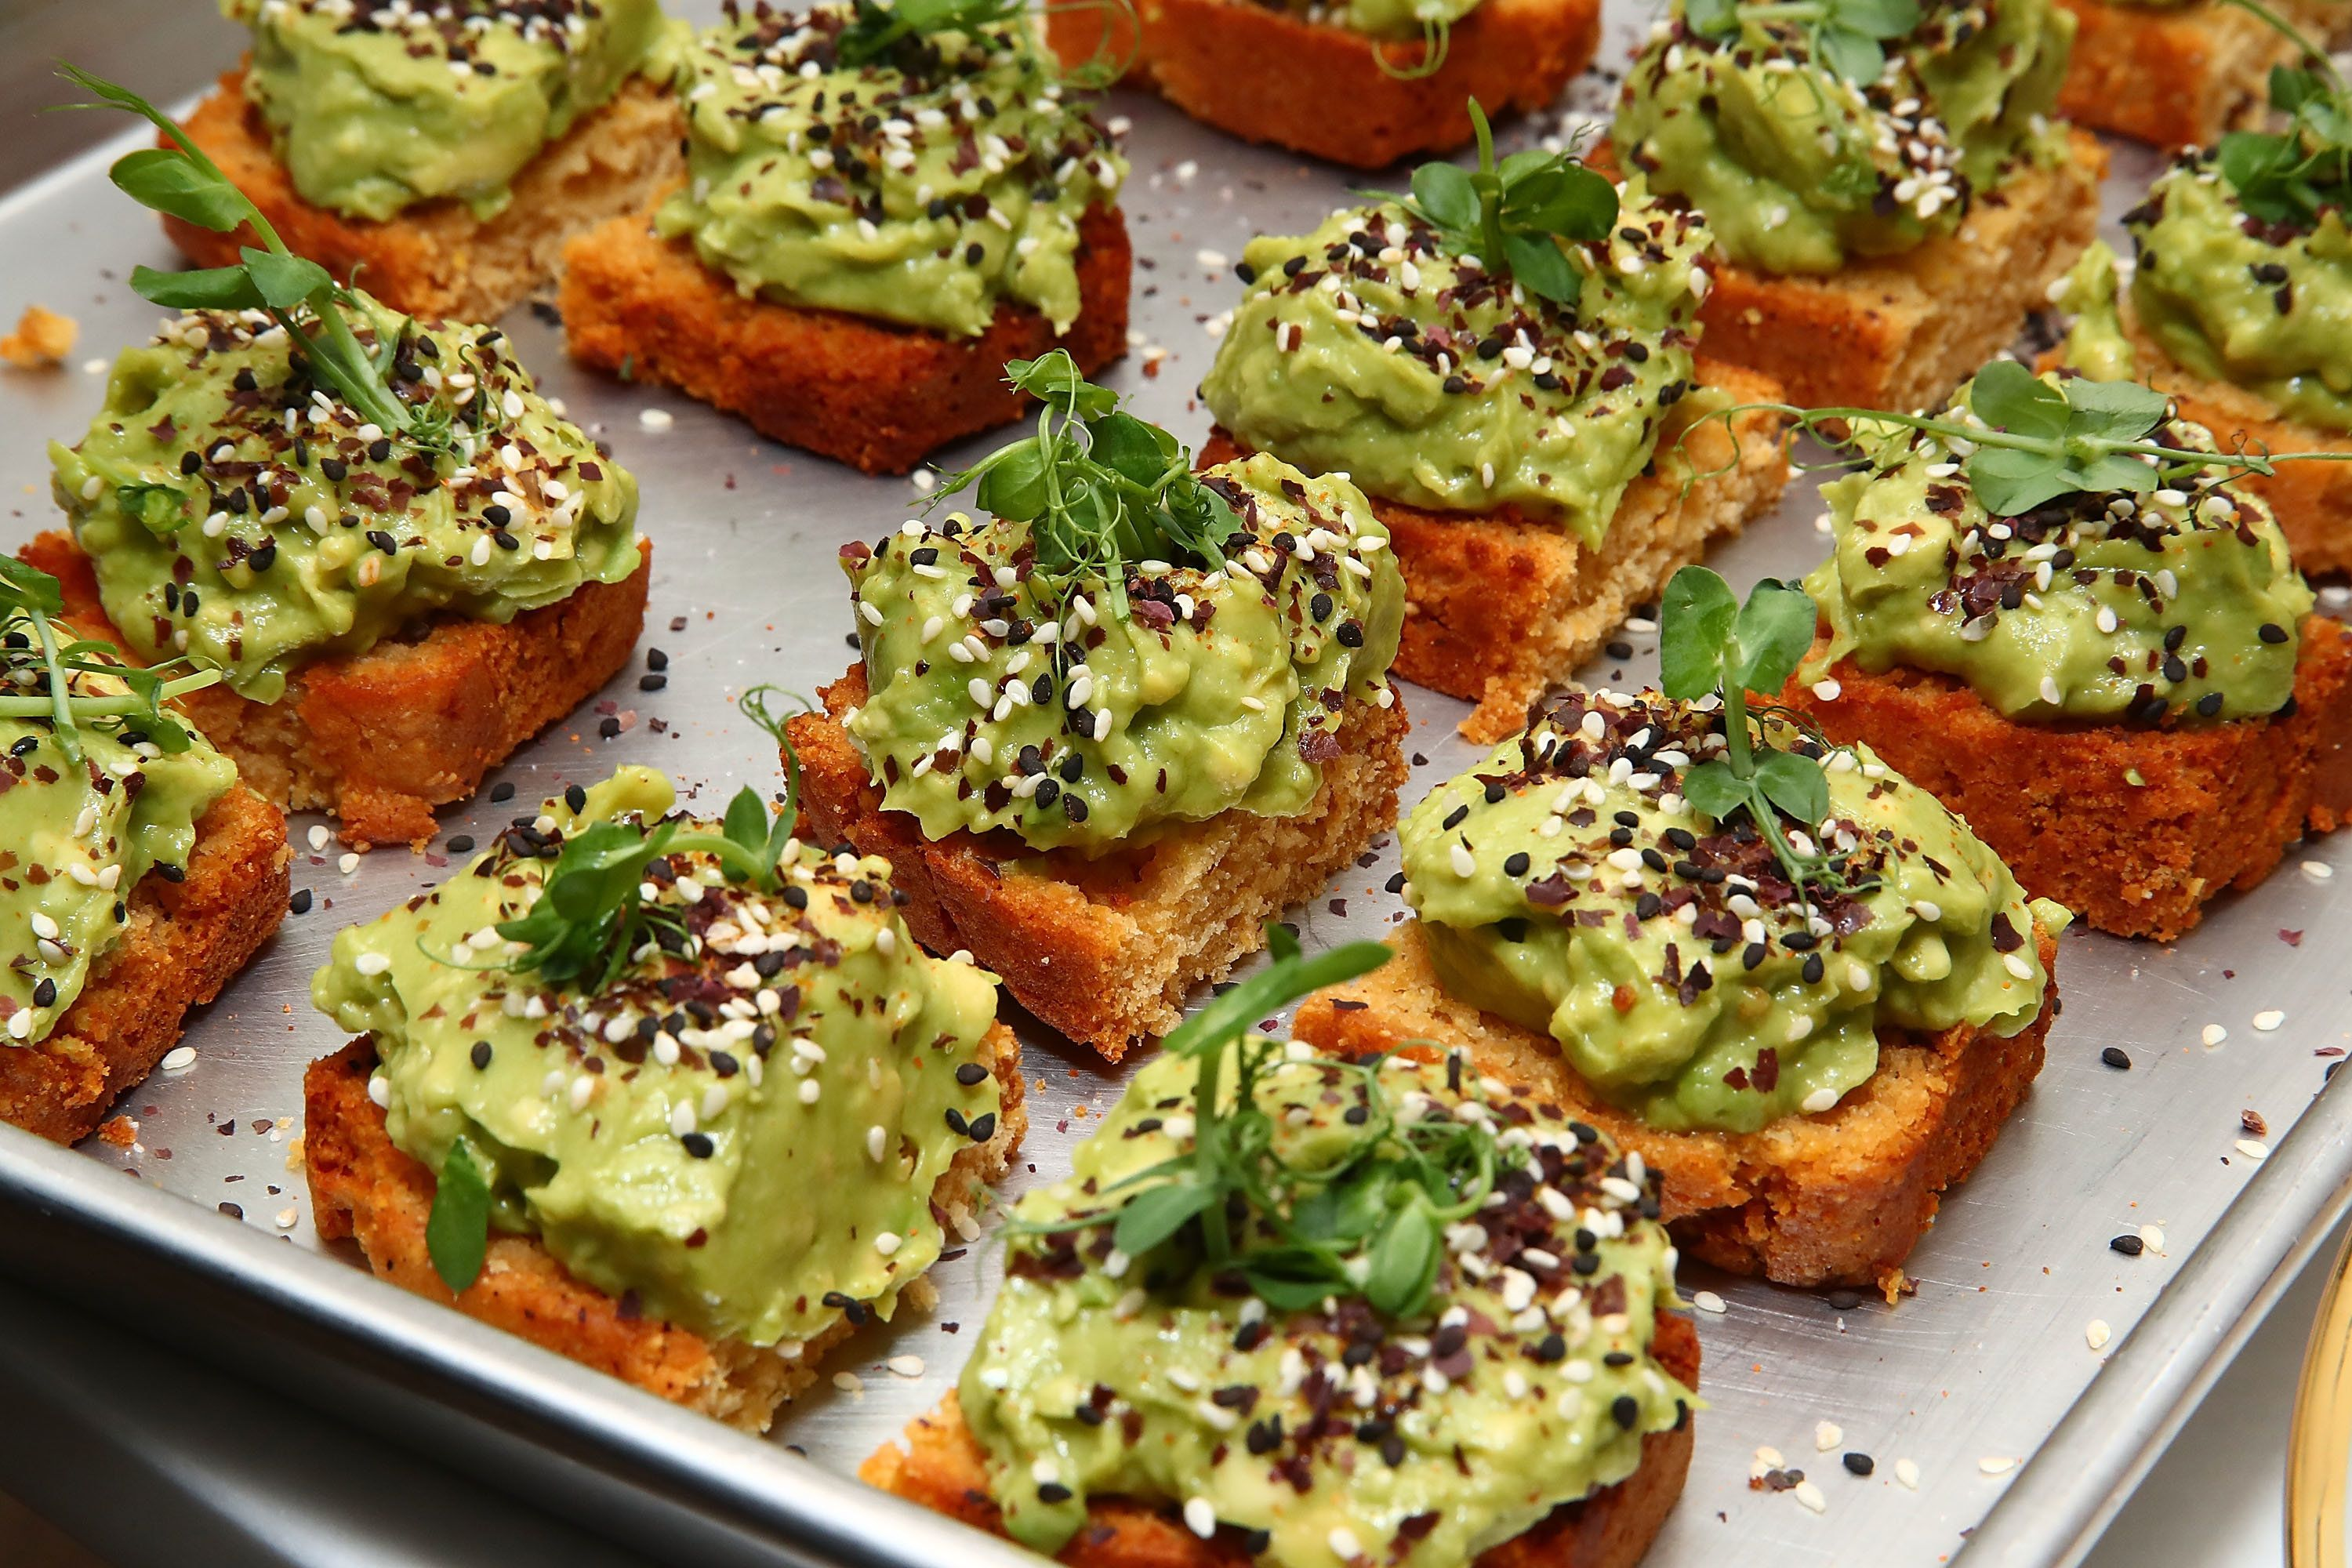 NEW YORK, NY - APRIL 19:  Avocado toast is served during CBD For Life future of healing event held at the Alchemists Kitchen on April 19, 2017 in New York City.  (Photo by Astrid Stawiarz/Getty Images for CBD For Life)